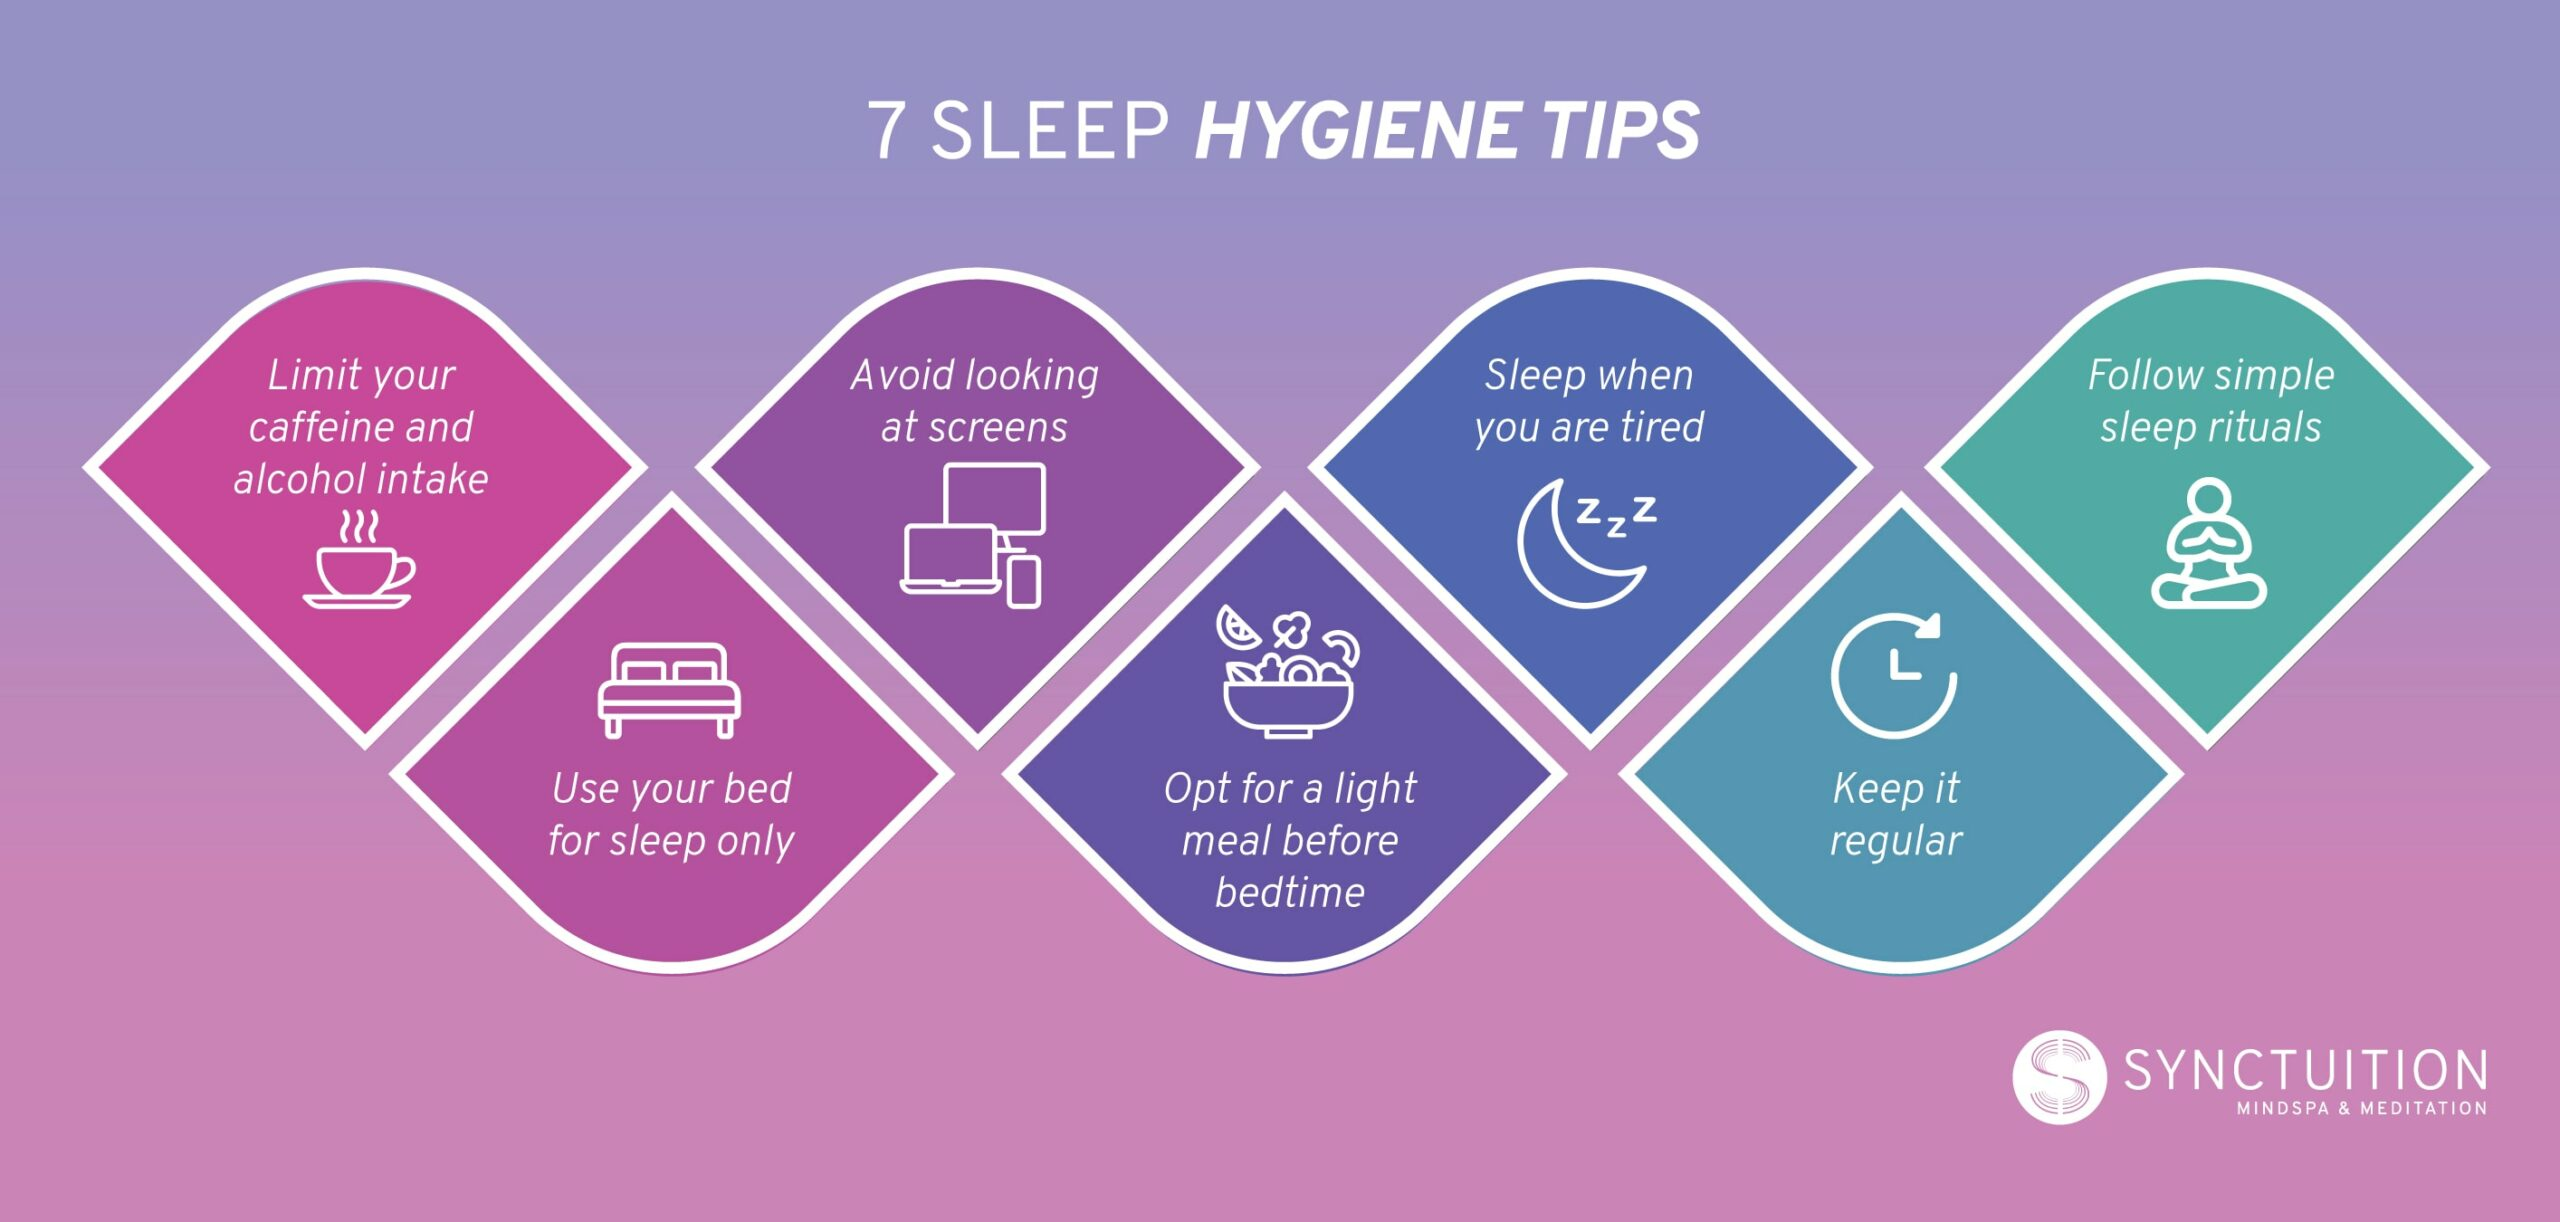 7 useful sleep hygiene tips for better nights and mornings